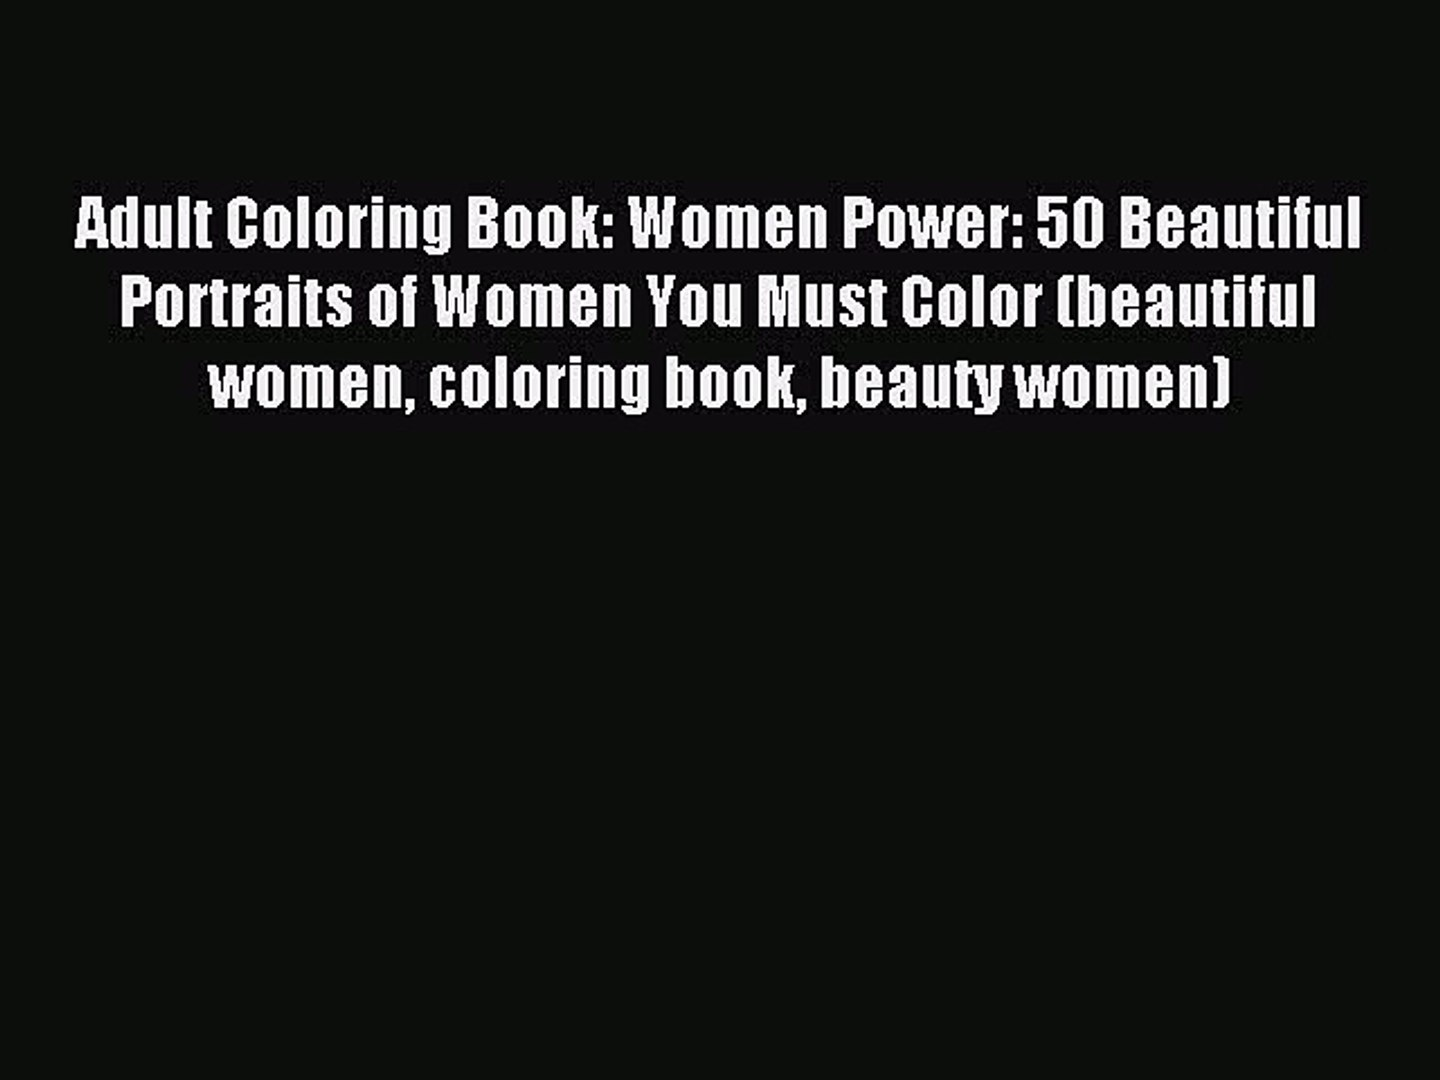 Read Adult Coloring Book: Women Power: 50 Beautiful Portraits of Women You Must Color (beautiful